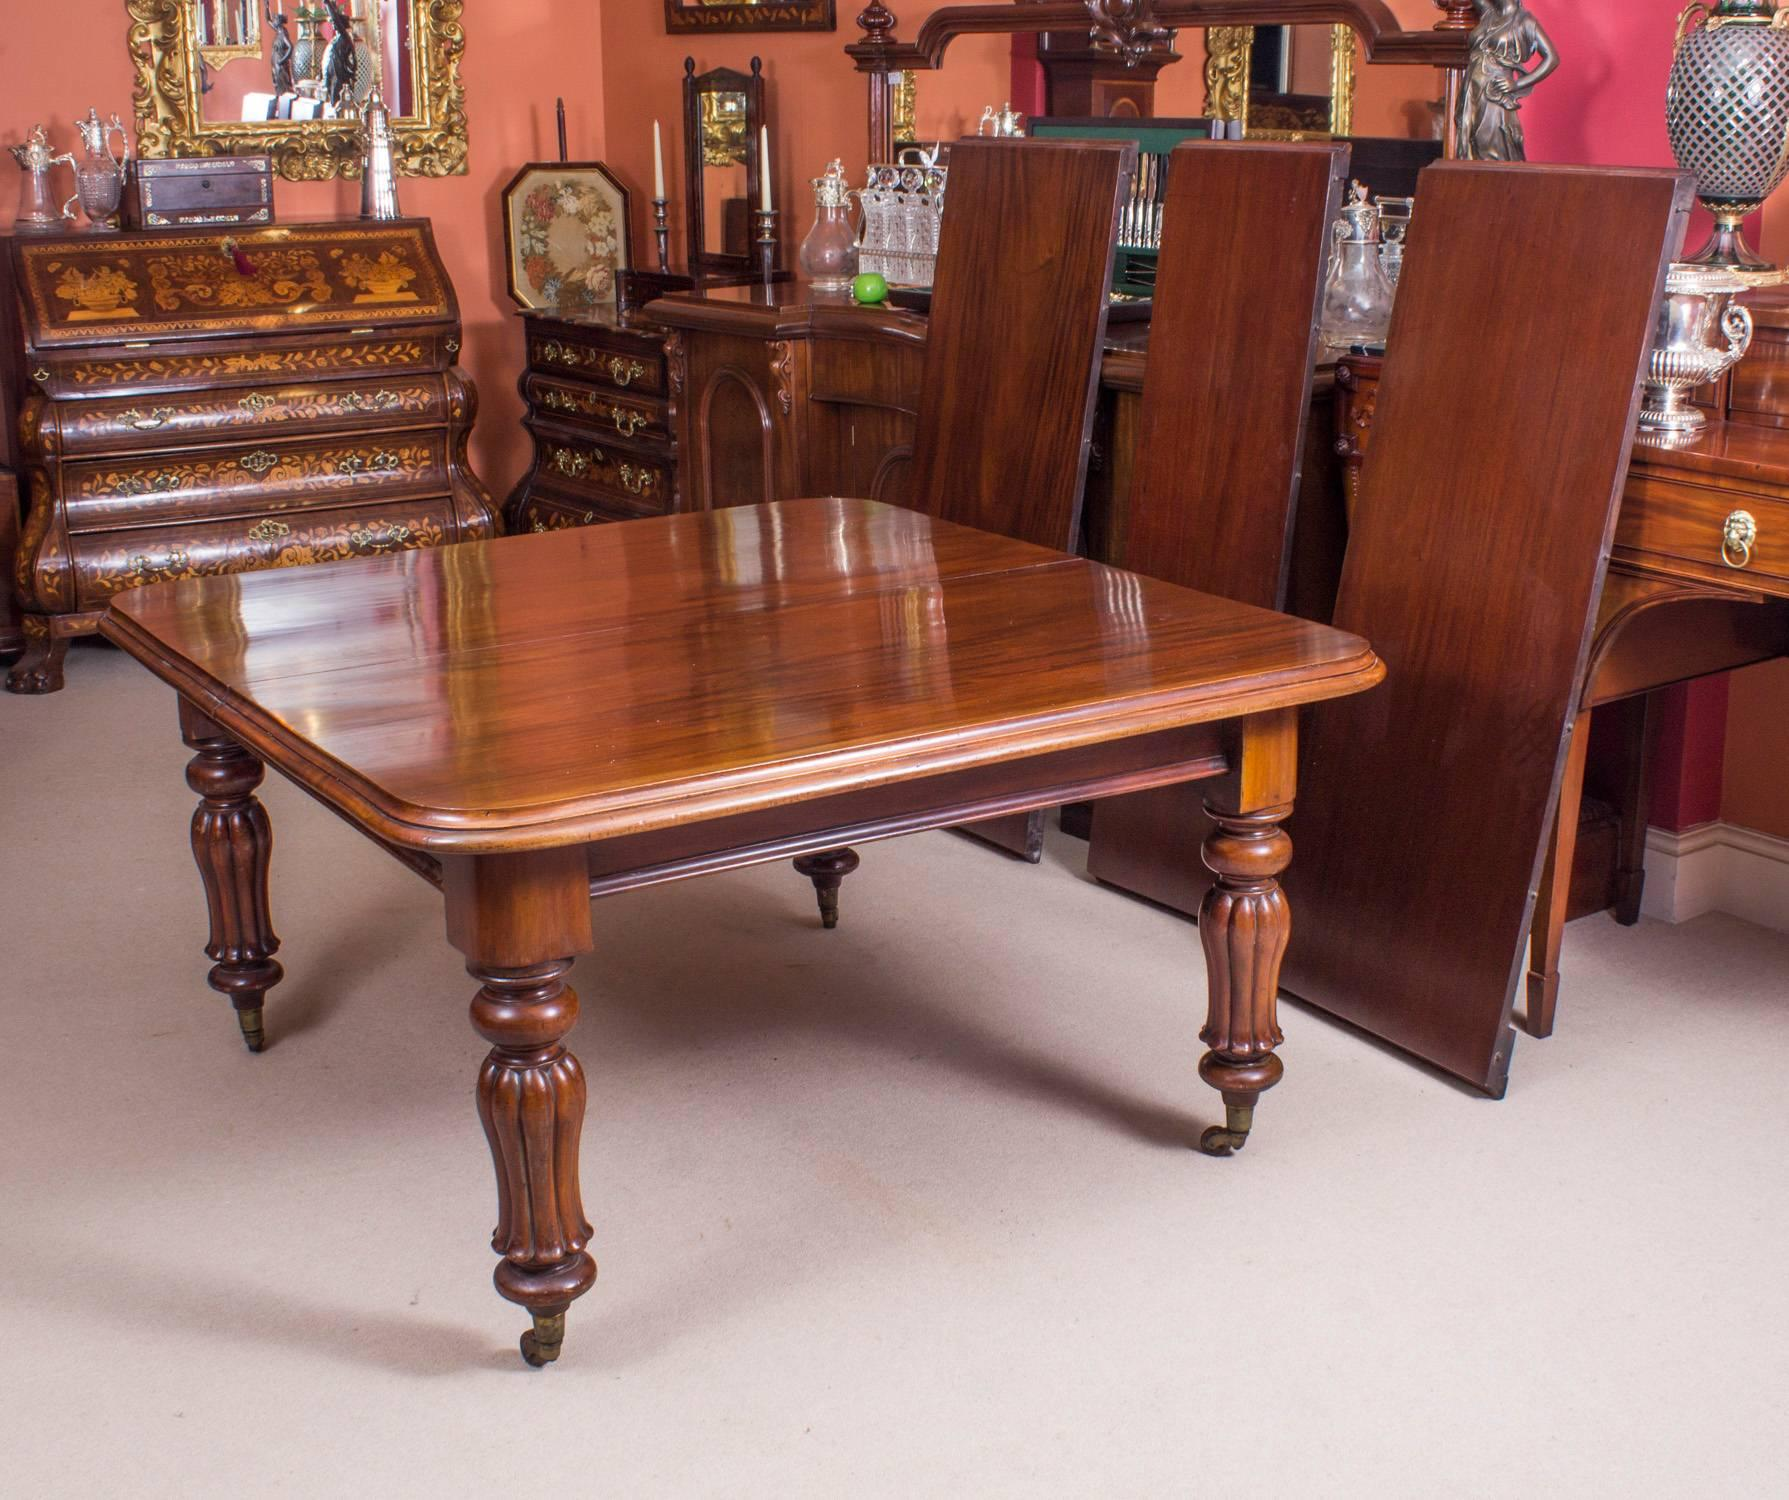 19th Century William IV Mahogany Dining Table And 12 Chairs For Sale 2